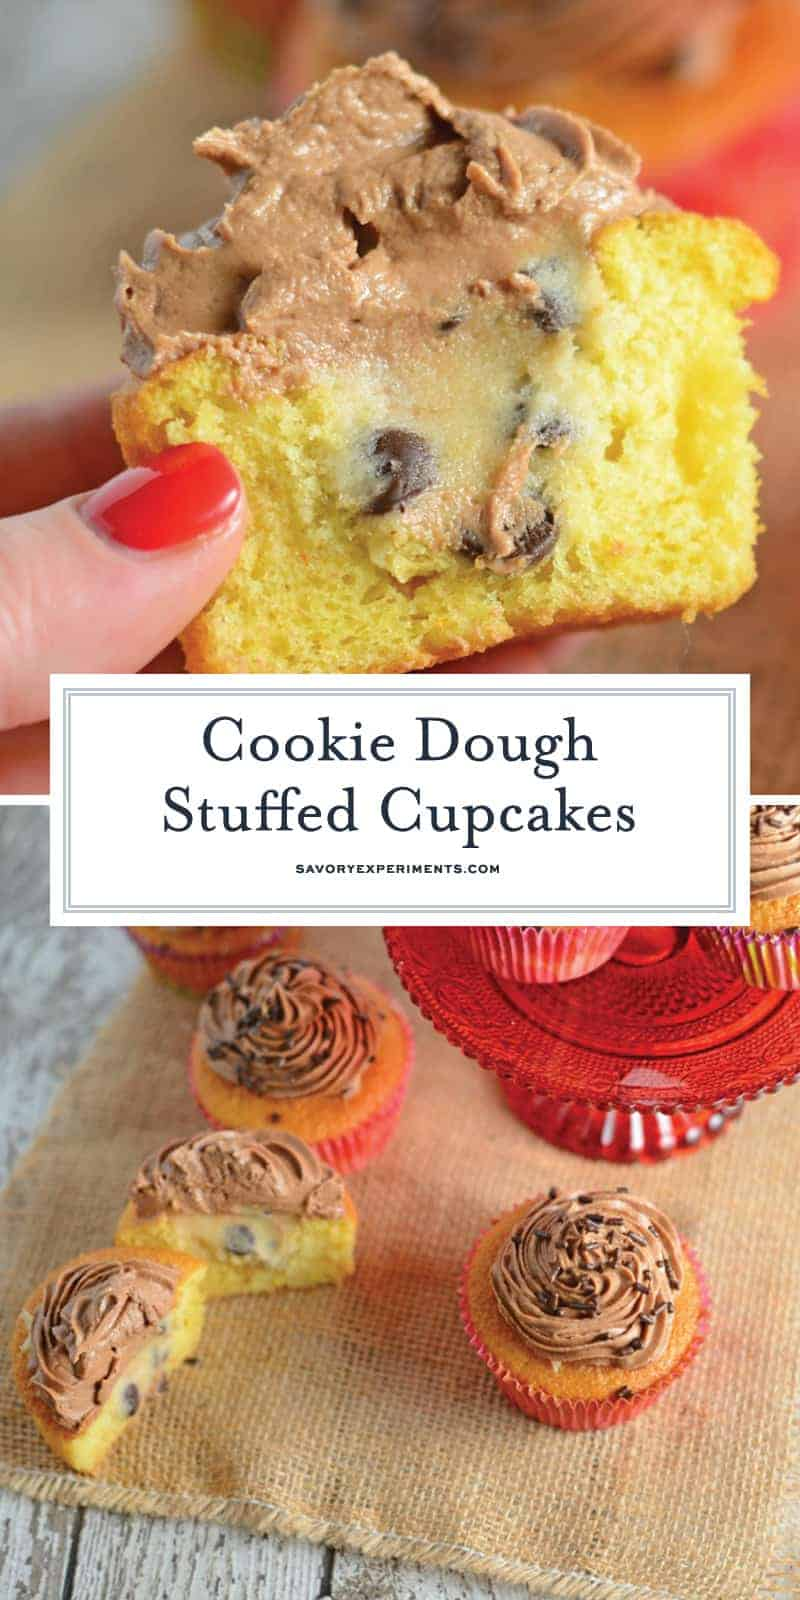 Cookie Dough Stuffed Cupcakes are vanilla cupcakes stuffed with edible cookie dough and topped with whipped chocolate frosting. You won't beleive how easy these are to make! #stuffedcupcakes #cookiedoughstuffedcupcakes www.savoryexperiments.com